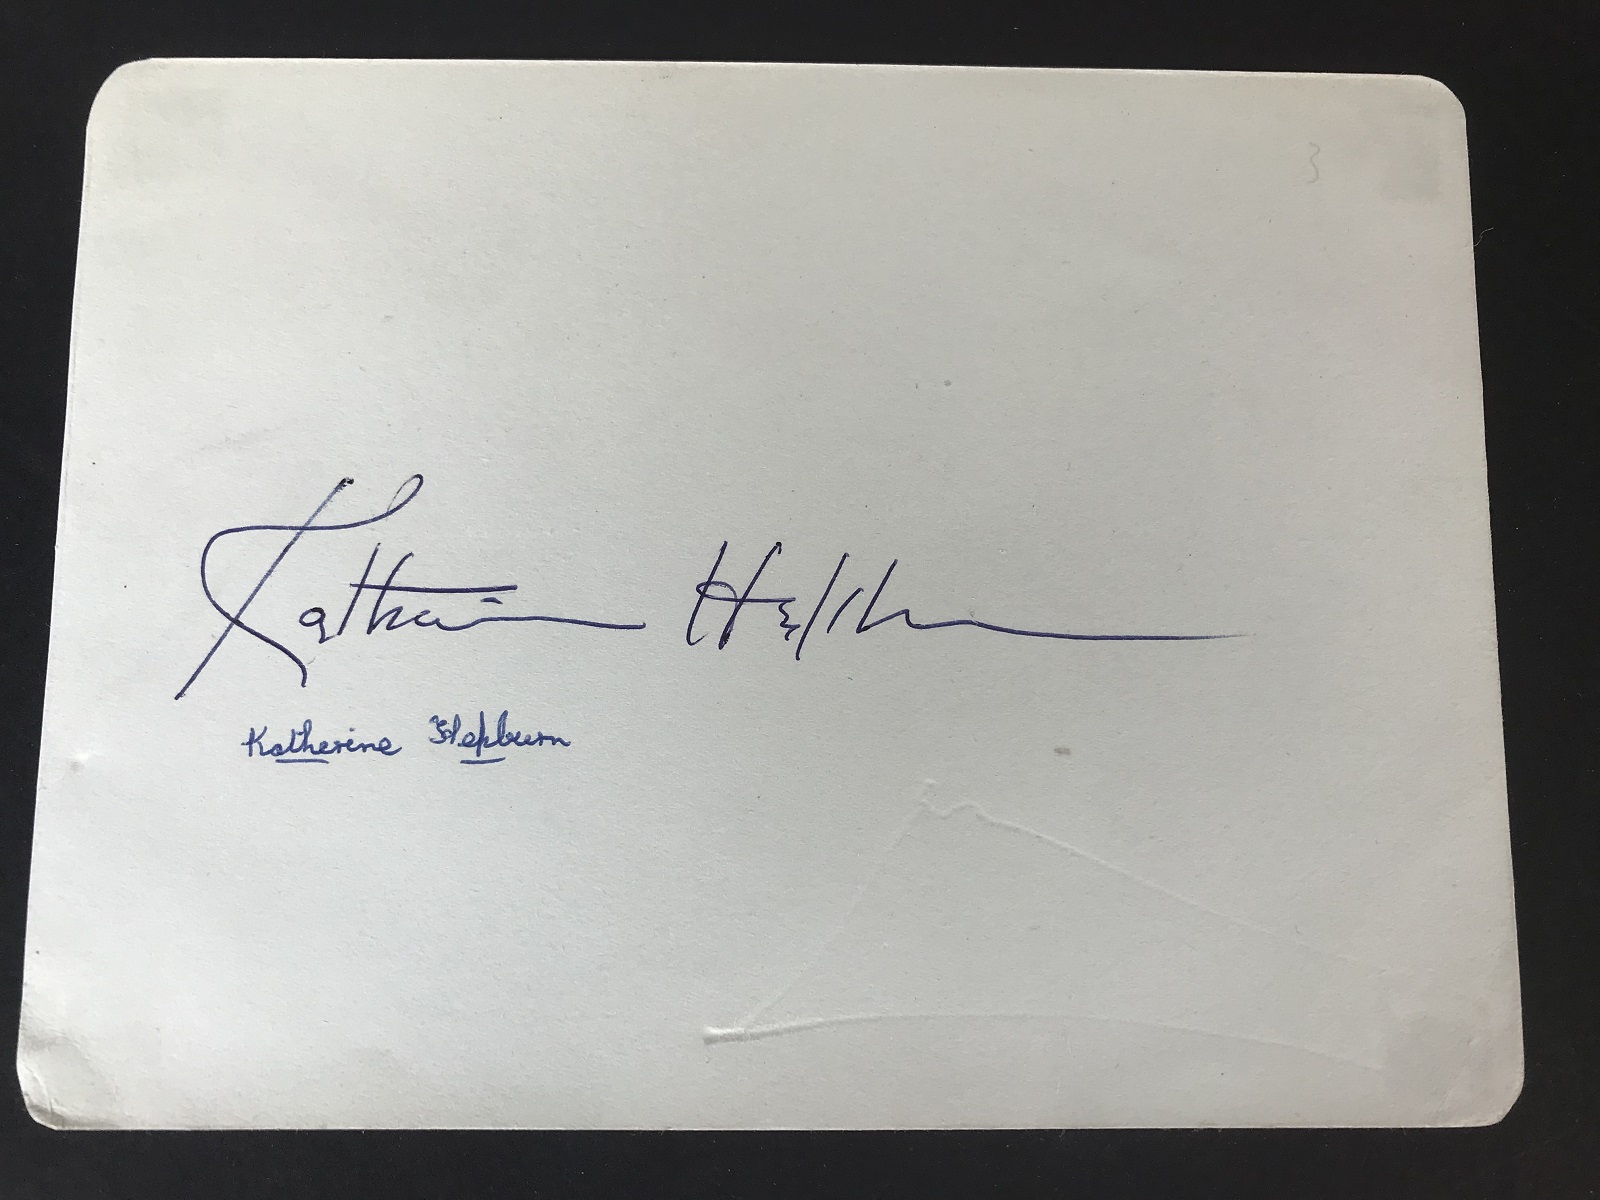 Katherine Hepburn signed autograph album page, mounted with a 10x8 black and white photo of - Image 2 of 2